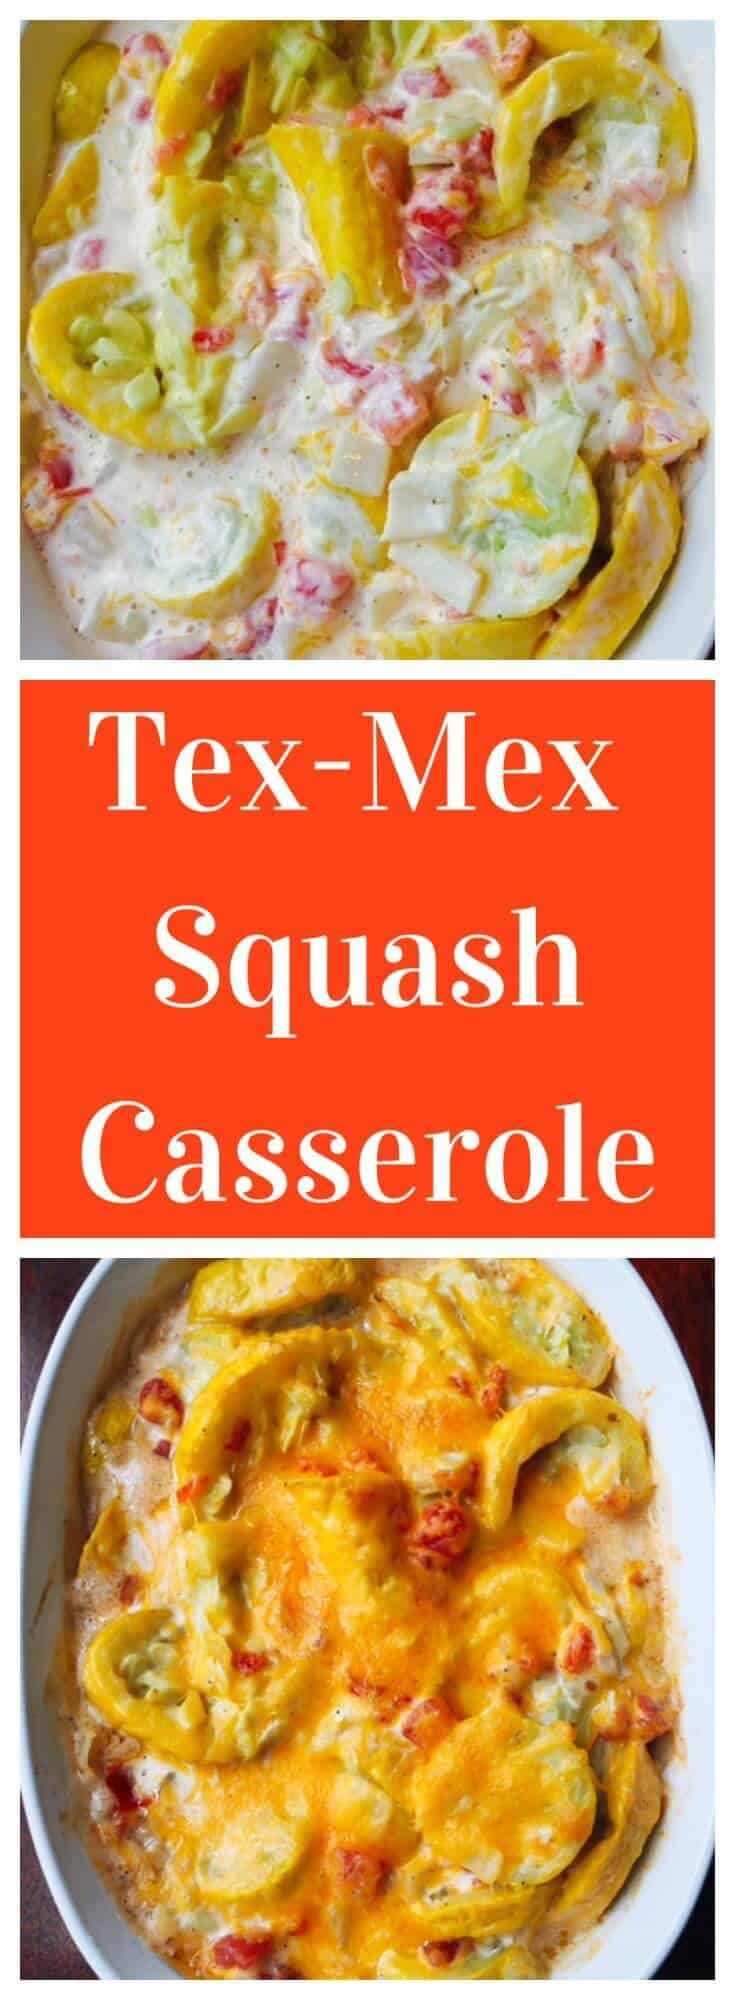 Cheesy, creamy and low carb, Tex Mex Squash Casserole makes the perfect side dish.